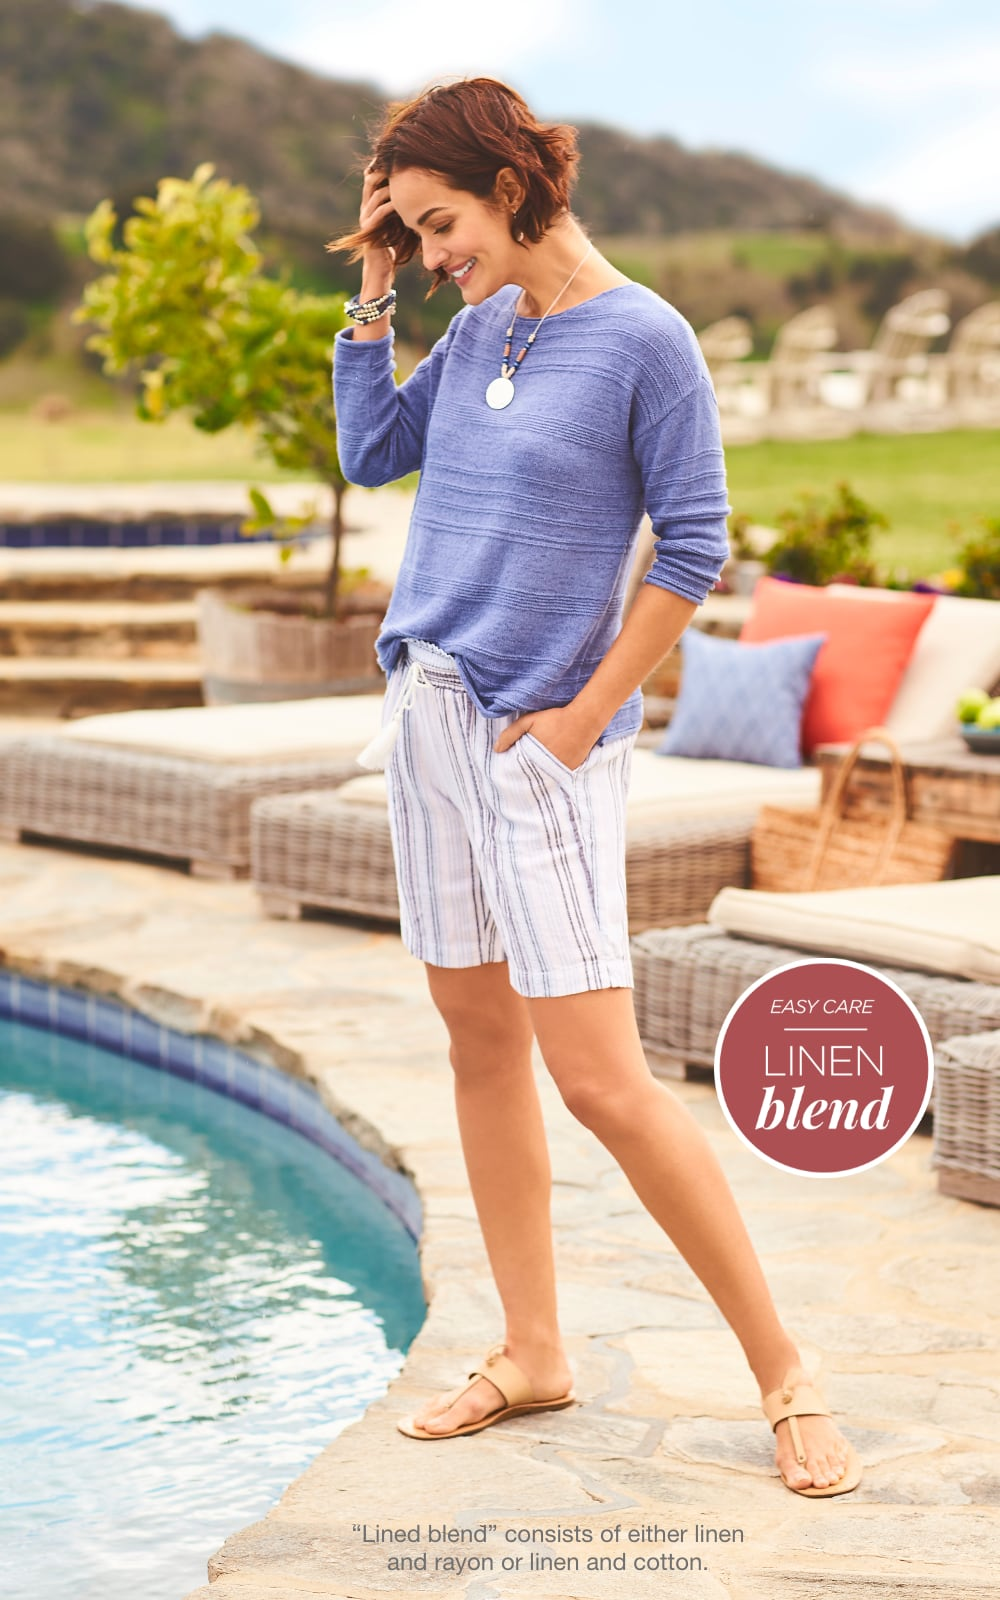 """Easy Care Linen Blend! Our """"Ottoman Sweater"""" Outfit. """"Linen blend"""" consists of either linen and rayon or linen and cotton."""